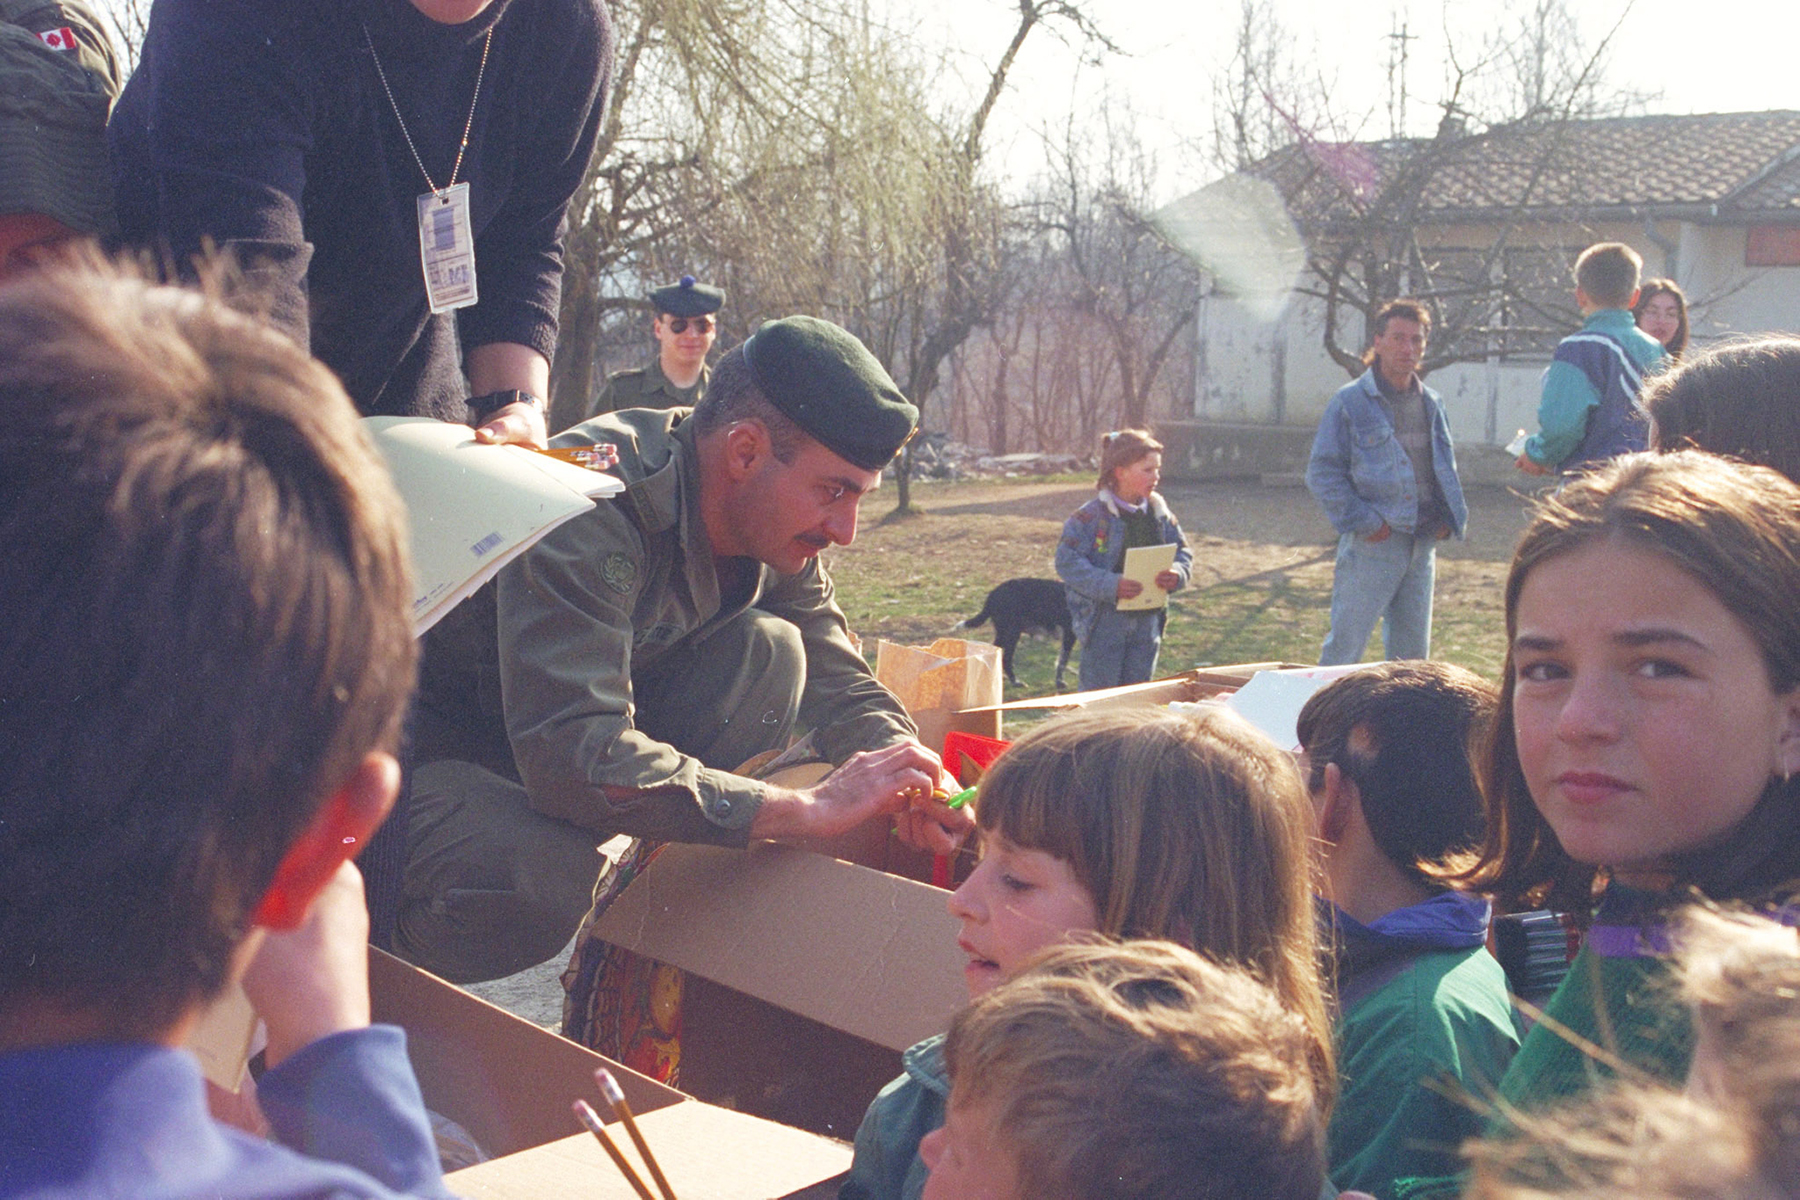 Christmas comes early for students of the Rajnovac School in Rajnovac, Bosnia (now Kosovo) as Canadian Forces members help students open and look through boxes of books donated by the soldiers. PHOTO: Sergeant Lavallee